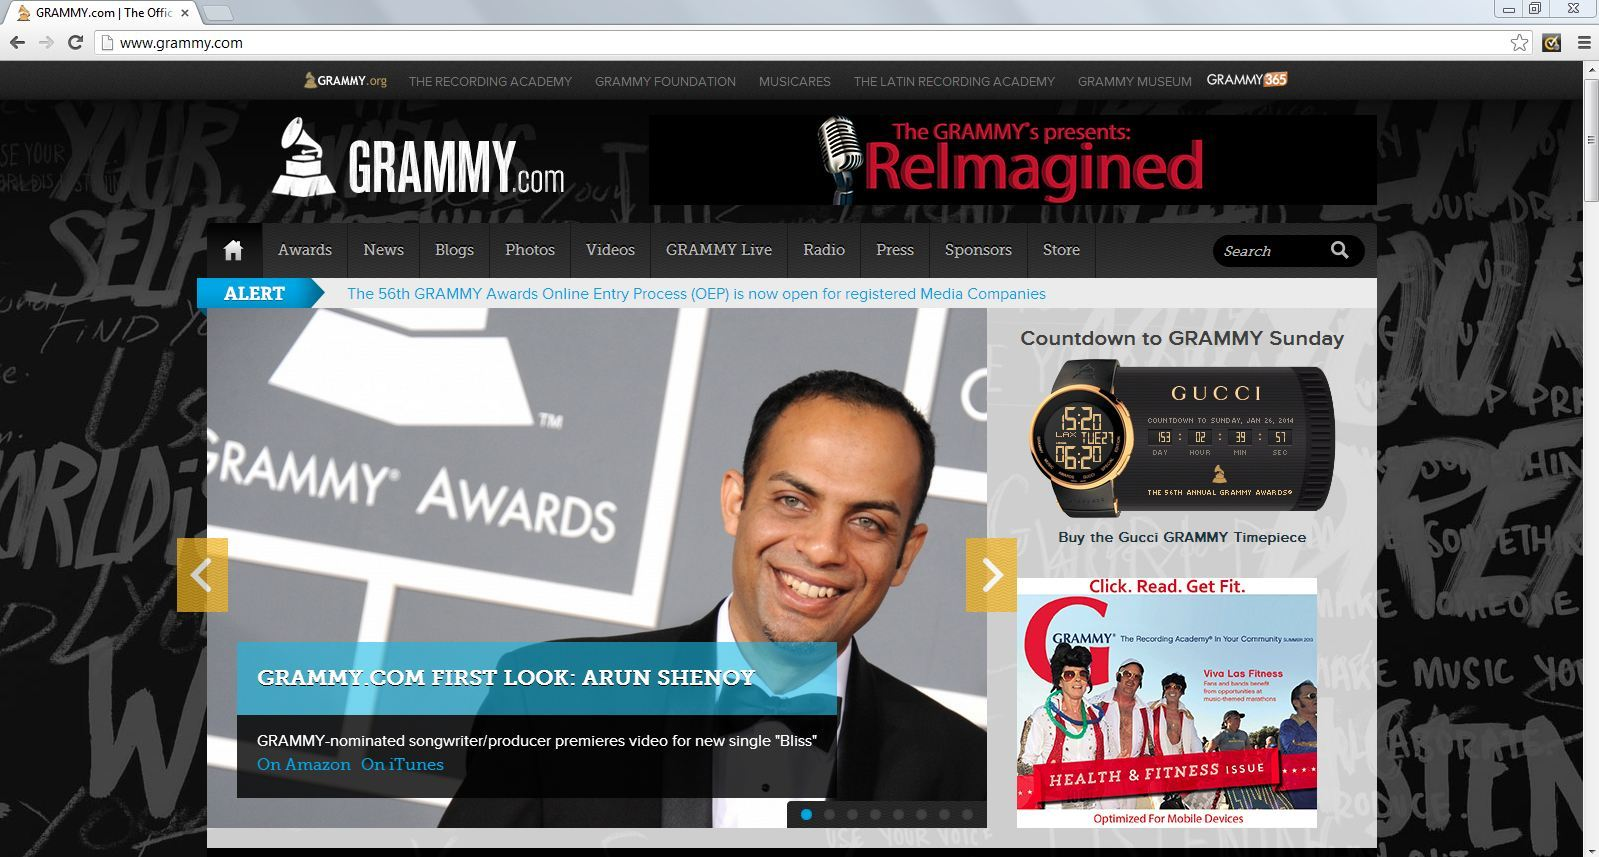 Arun Shenoy GRAMMY.com Exclusive